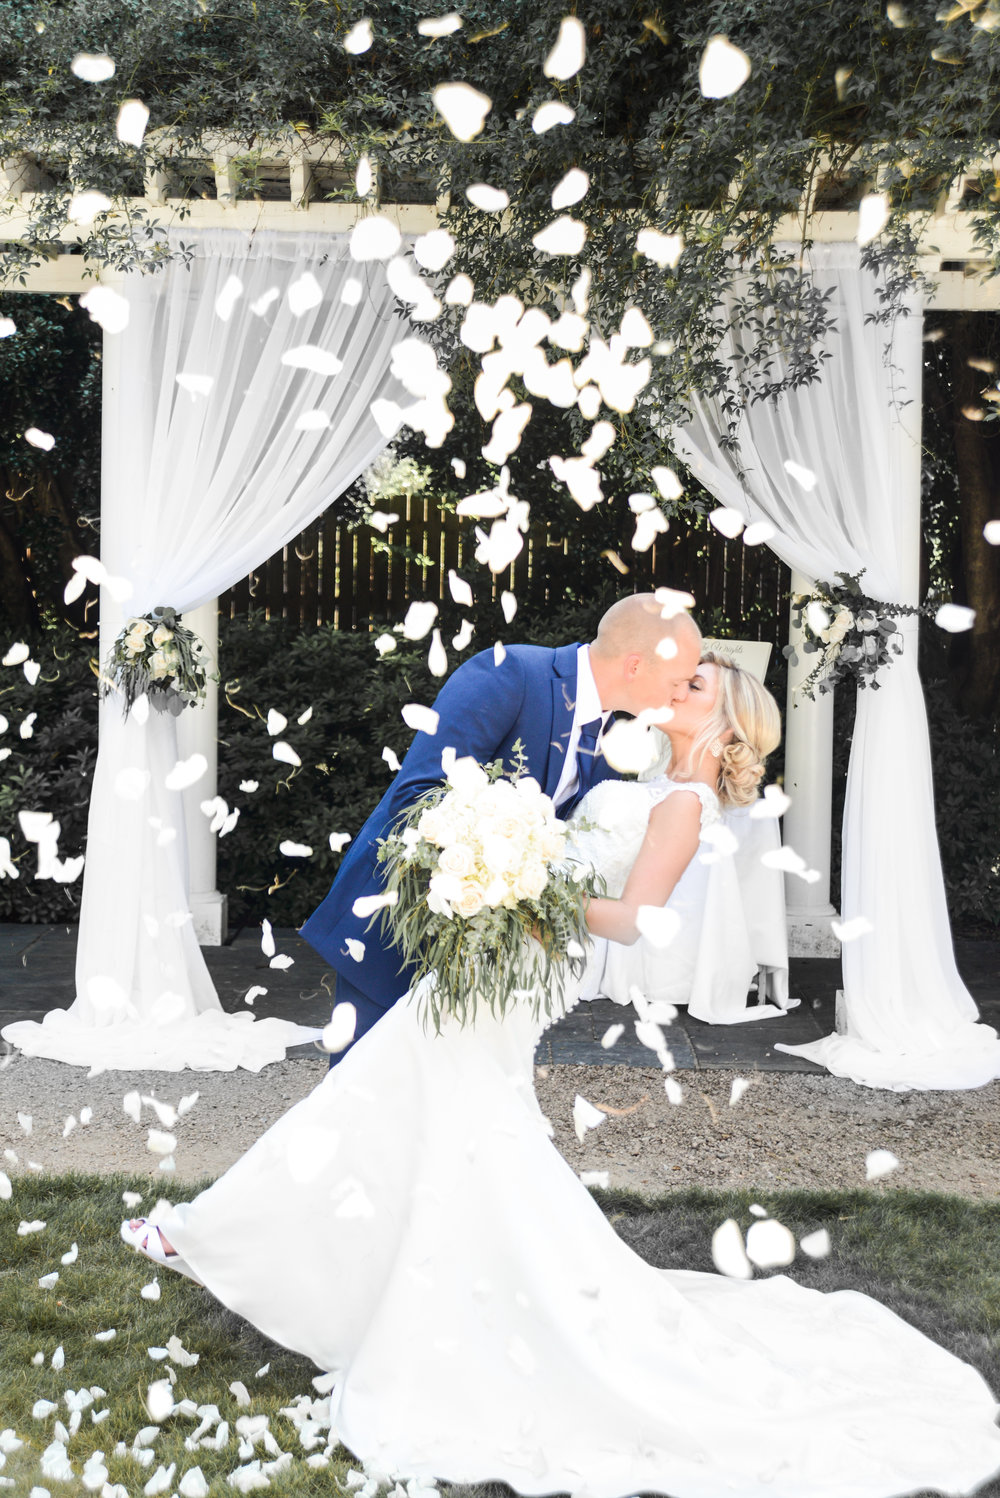 THE WEDDING EXPERIENCE - Learn More